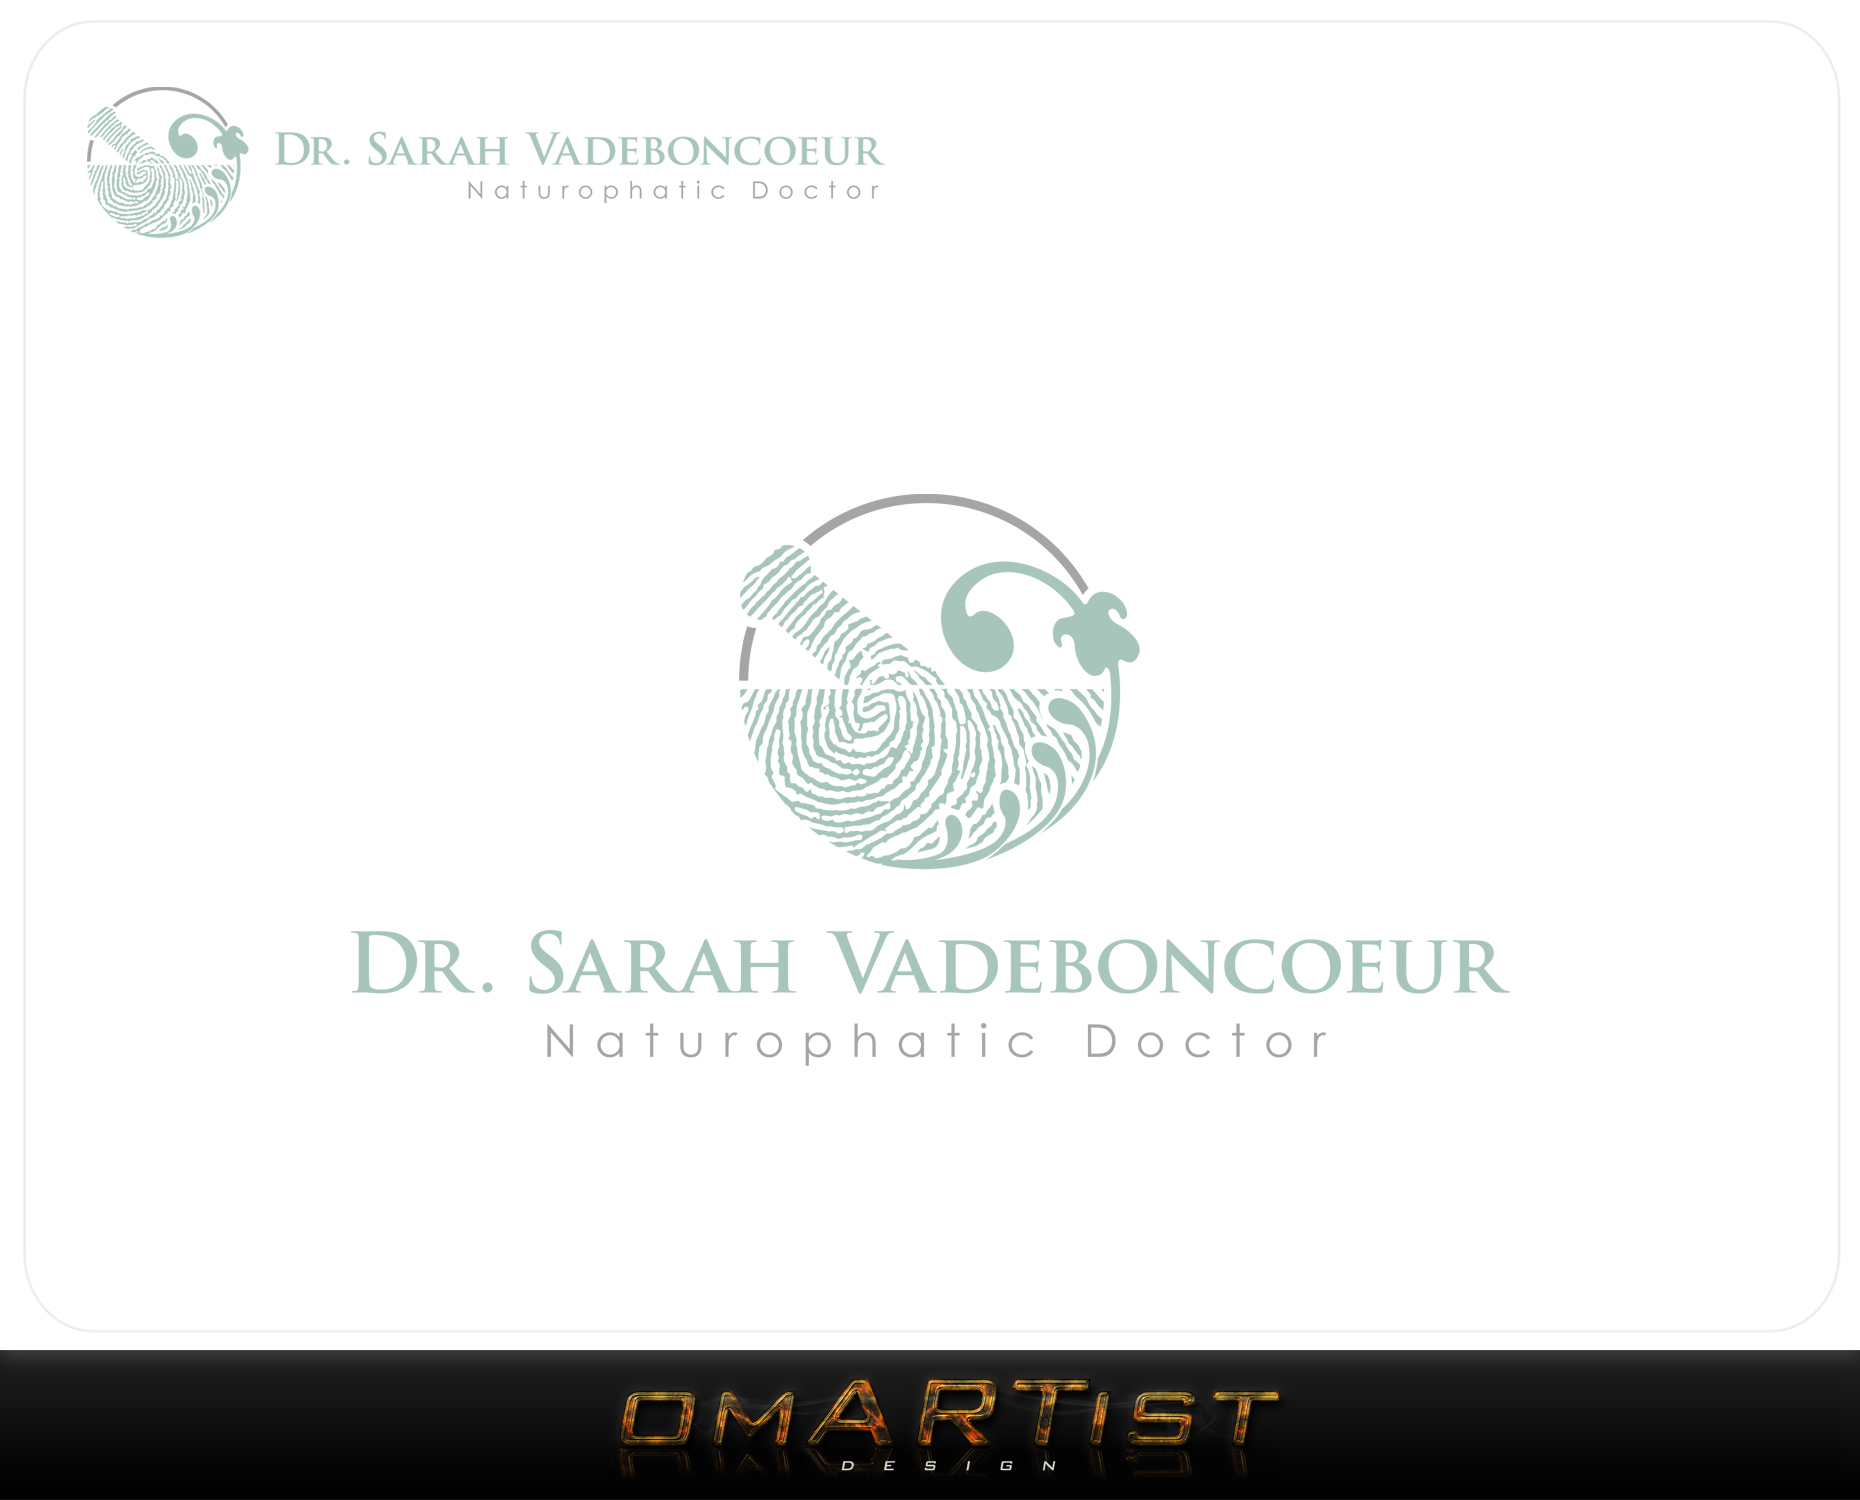 Logo Design by omARTist - Entry No. 20 in the Logo Design Contest New Logo Design for Dr. Sarah Vadeboncoeur, Naturopathic Doctor.